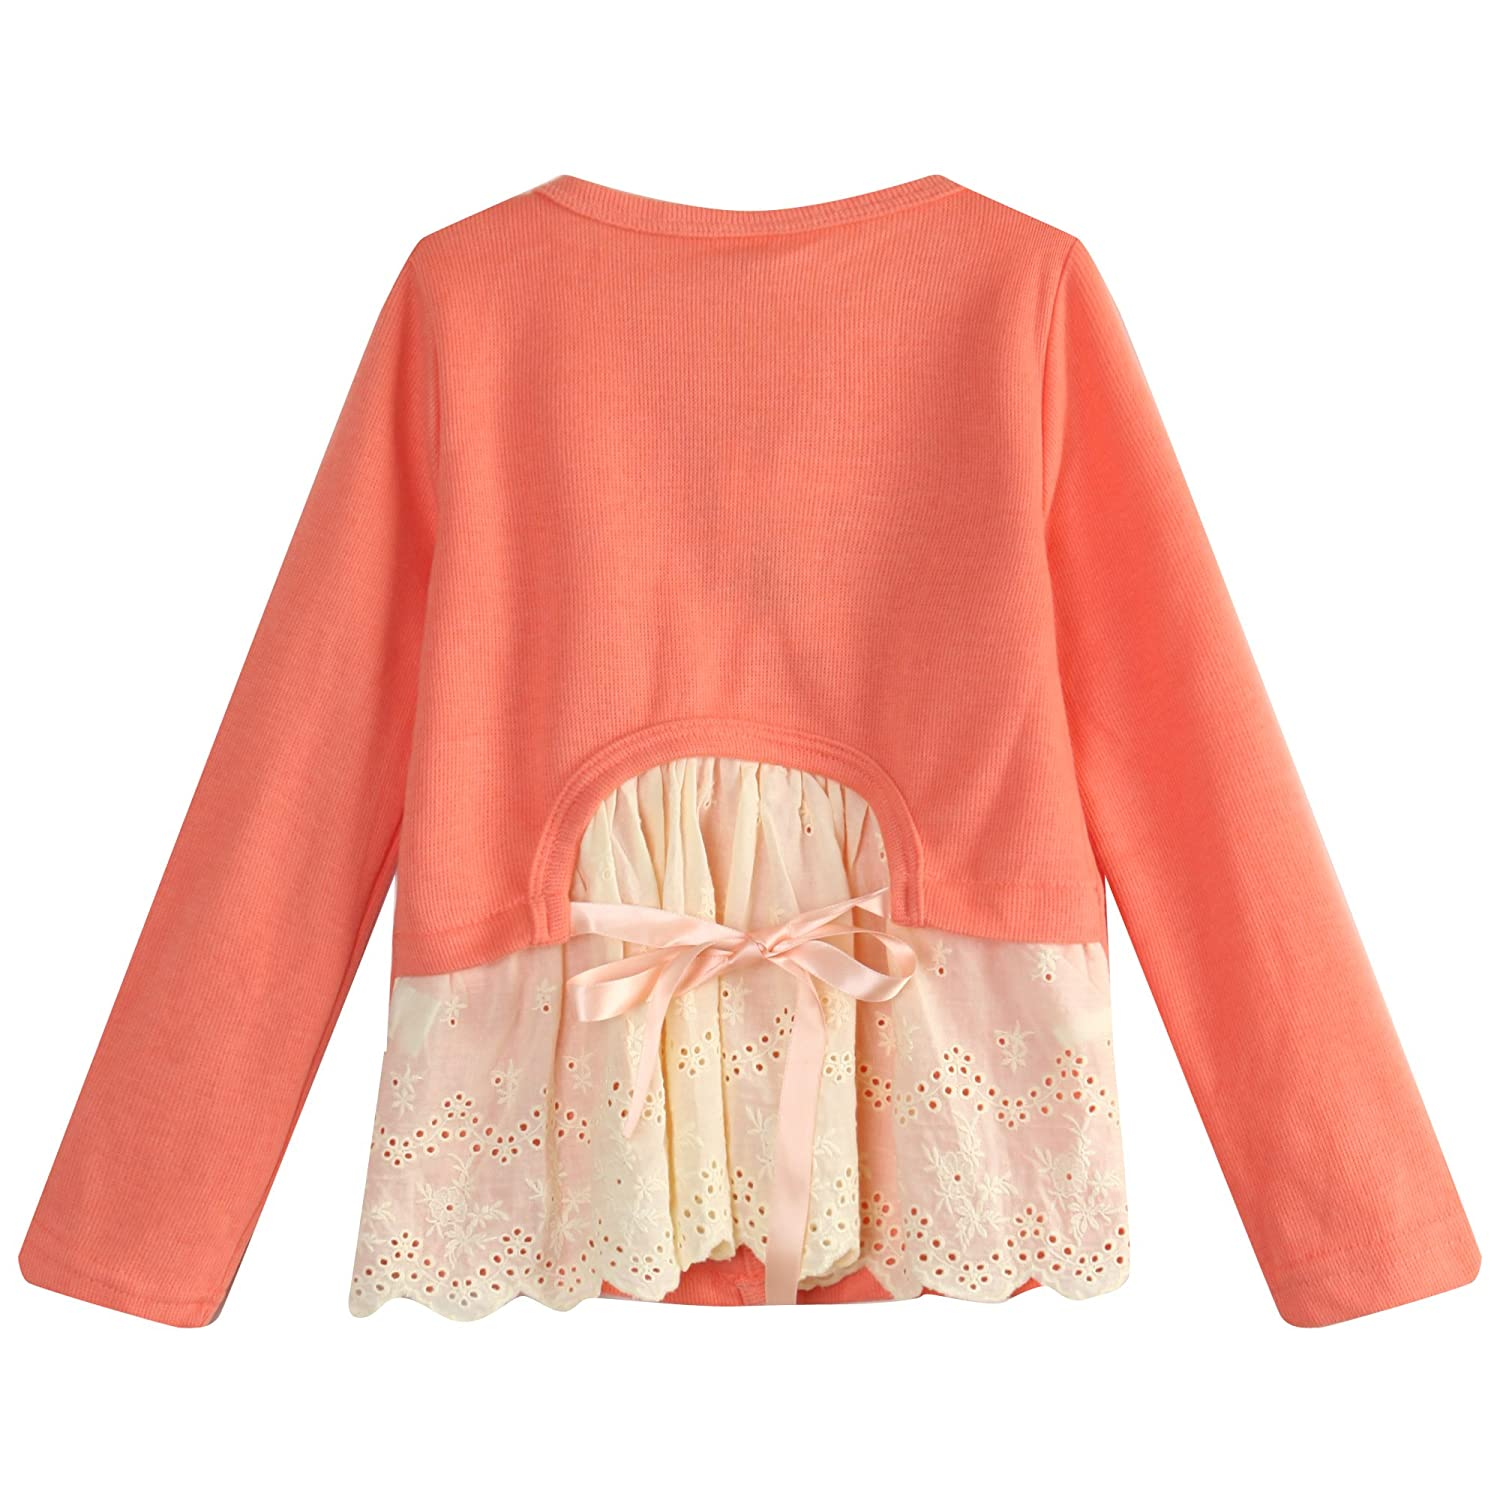 Richie House Girls' Top with Fancy Lace Elements and Pearly Buttons RH0892